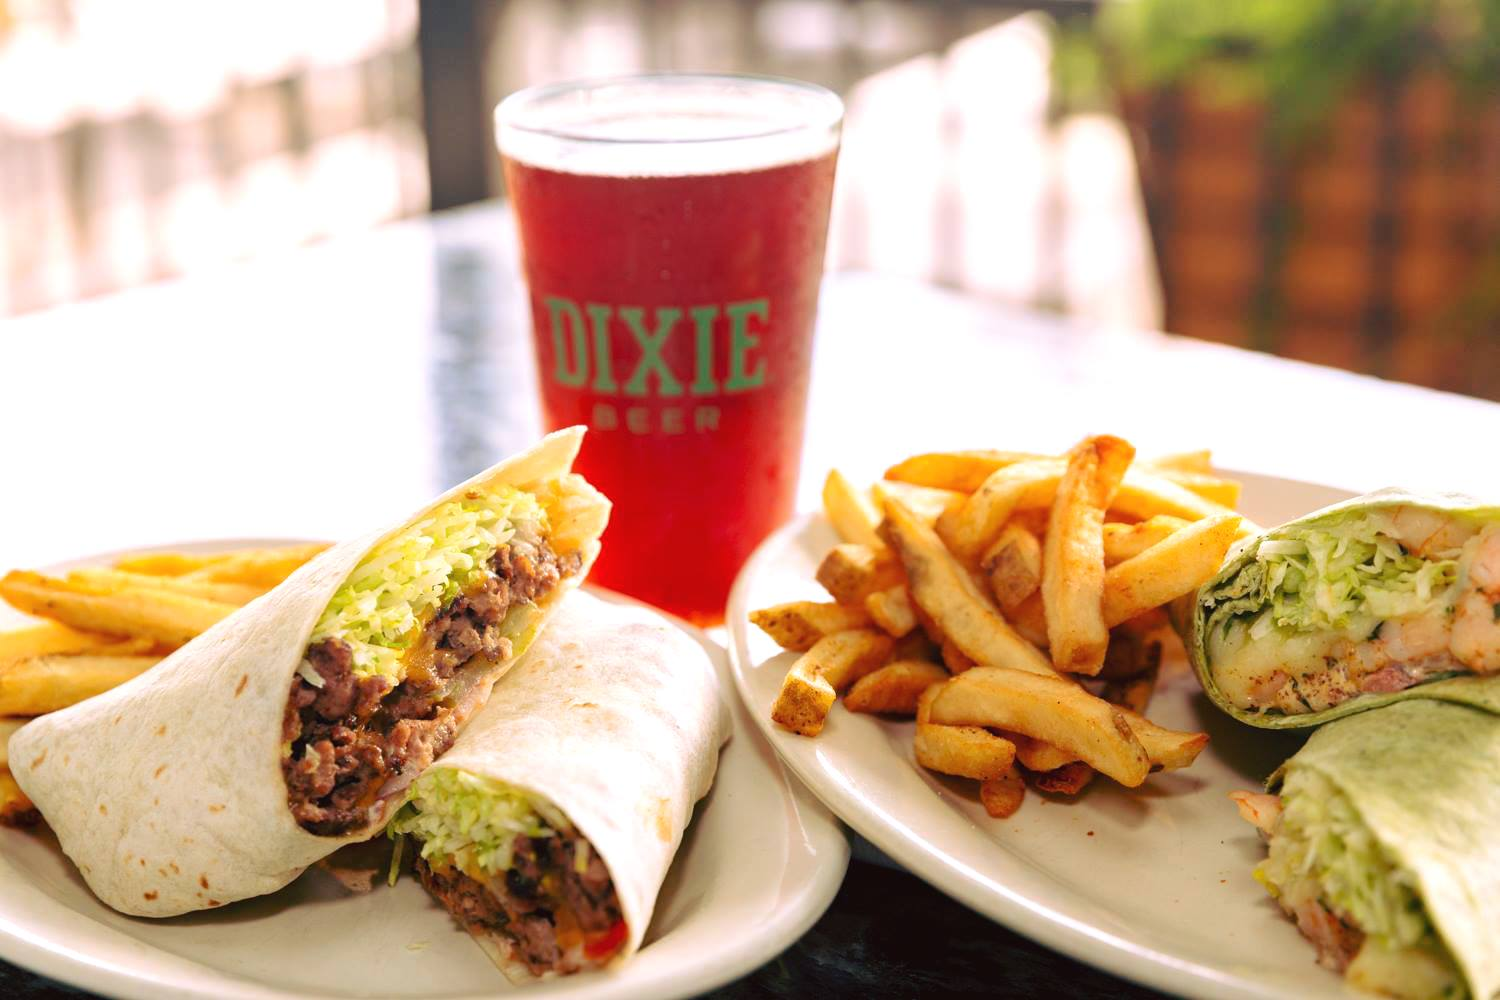 Two wrap dishes served with French fries.